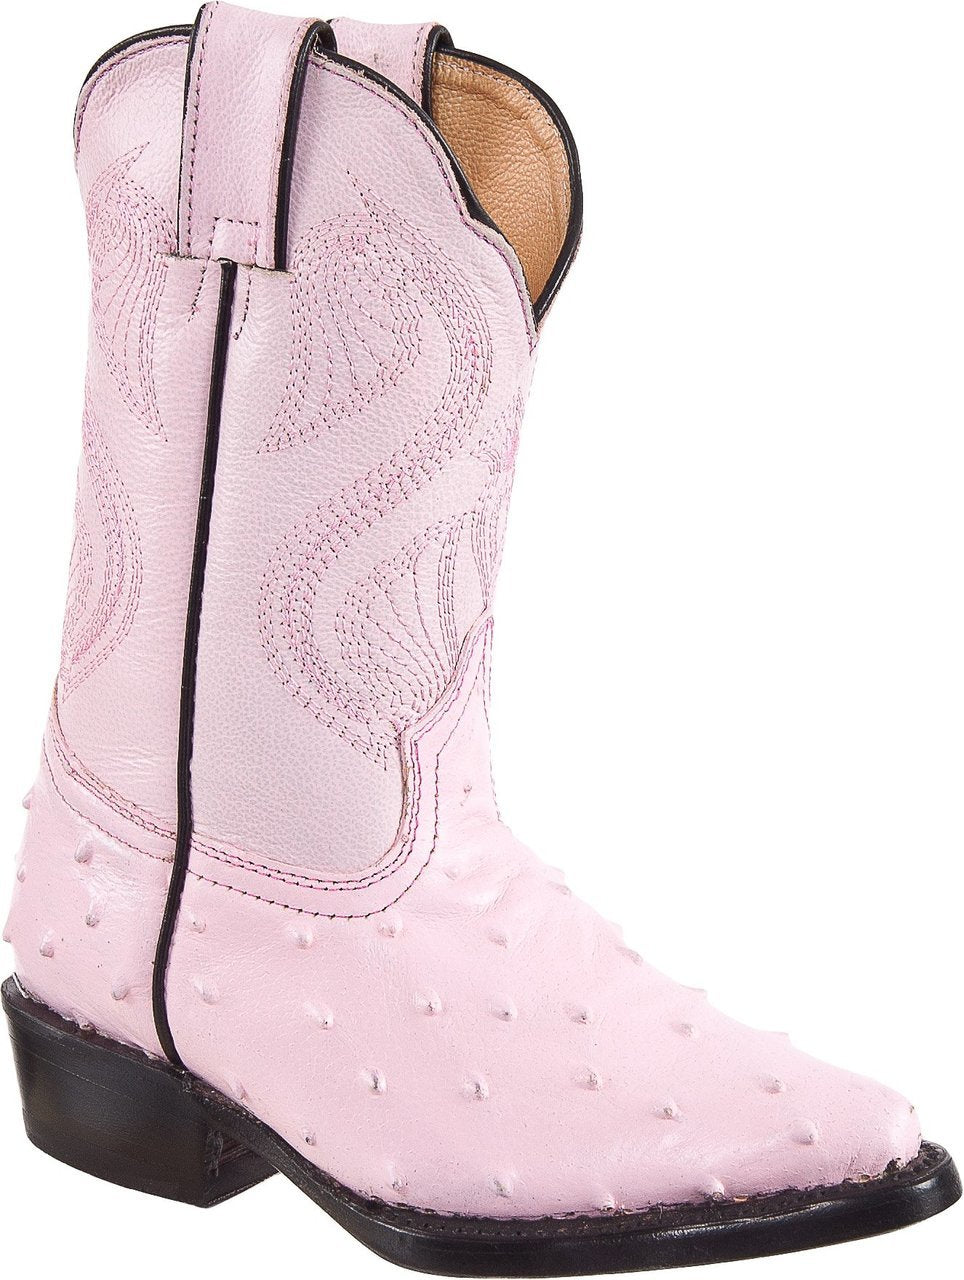 DIEGO'S Kids' Pink Ostrich Print Boots - Pointed Toe